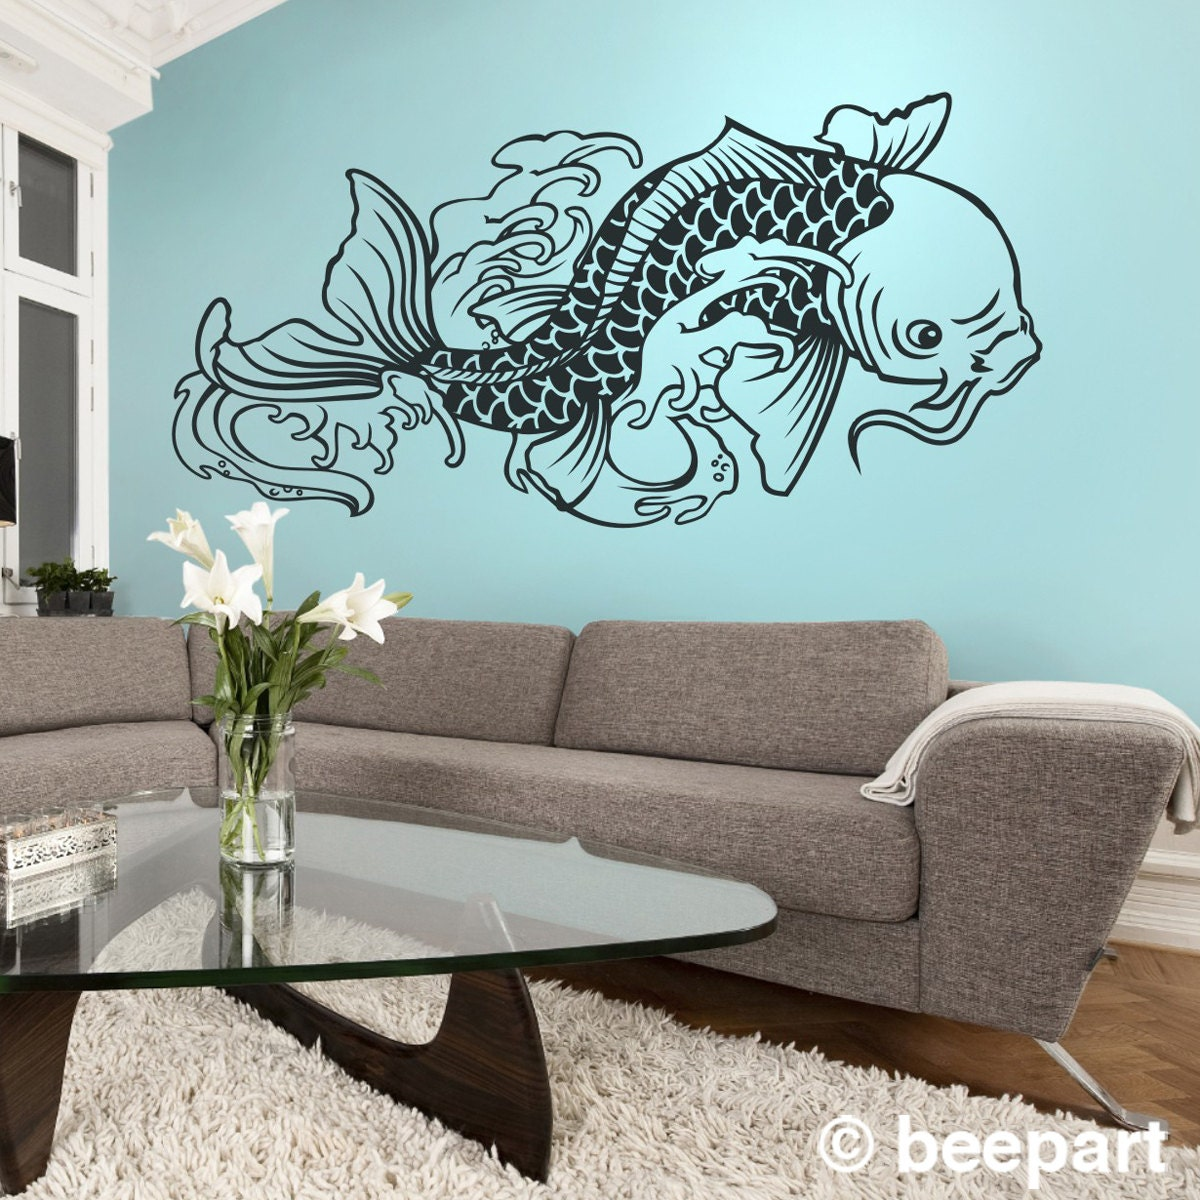 Koi Fish Wall Decal Tattoo Inspired Koi Vinyl Sticker Art - Japanese wall decals